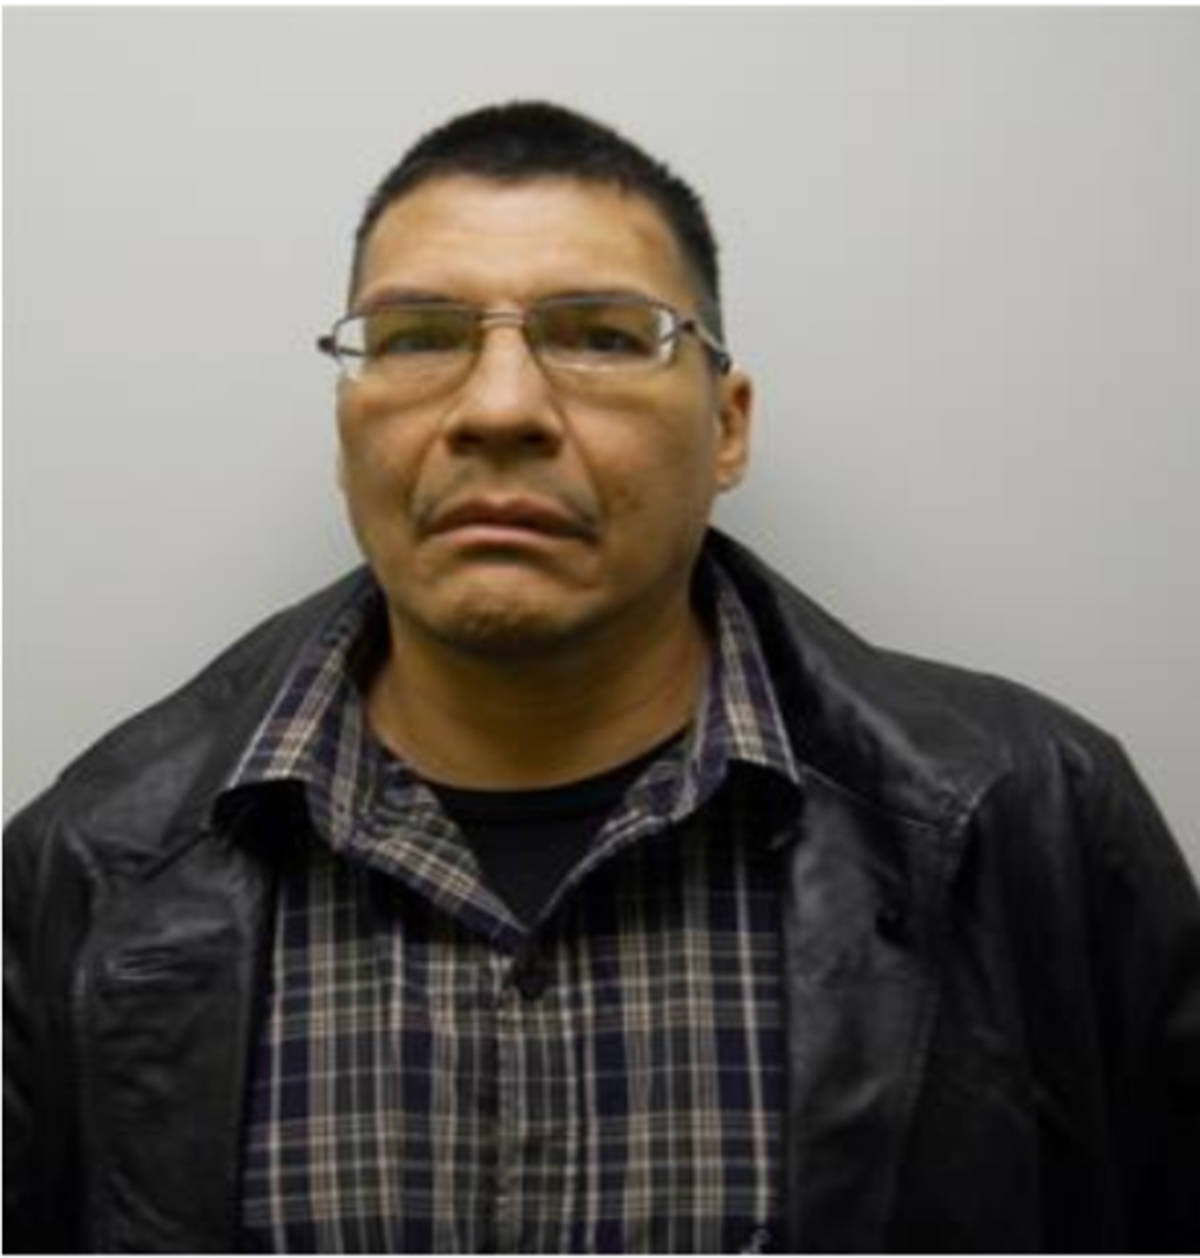 "Name: JEURISSEN, Shane Age: 51 Height: 5'8"" ft Weight: 221 lbs Hair: Black Eyes: Brown Tattoos: Left Forearm – Flames, Left Hand ""TY', Right Forearm – Flames, Right Hand – ""Black Marks, Left Forearm – Dragon and Right Wrist ""$"" Wanted: Canada Wide Warrant – Unlawfully at Large. Warrant in effect: April 1, 2021 Parole Jurisdiction: Surrey, BC"